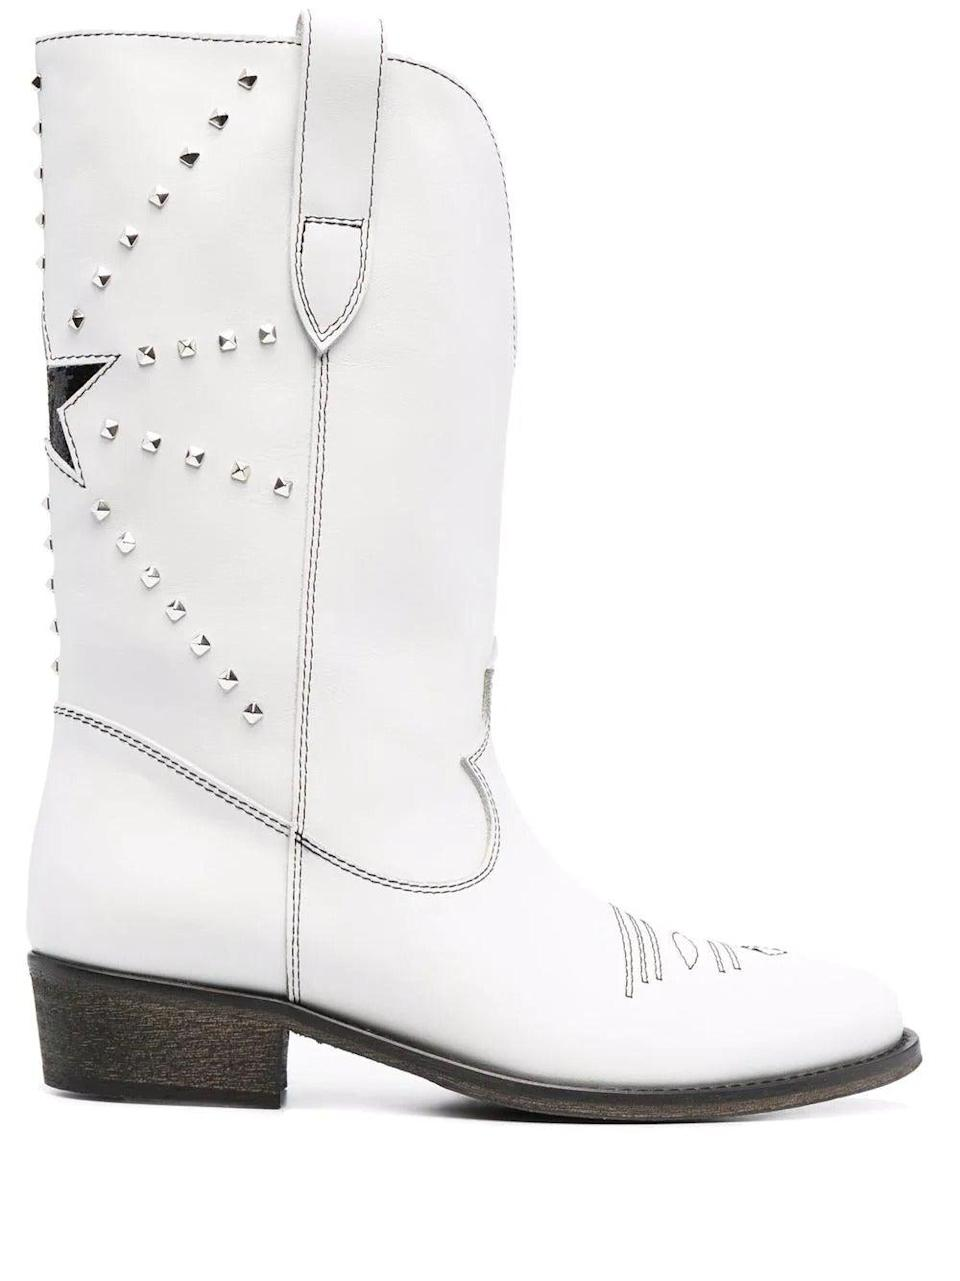 """<br><br><strong>Via Roma 15</strong> Star-Embroidered Cowboy Boots, $, available at <a href=""""https://www.farfetch.com/uk/shopping/women/via-roma-15-star-embroidered-cowboy-boots-item-16845507.aspx?storeid=9026"""" rel=""""nofollow noopener"""" target=""""_blank"""" data-ylk=""""slk:Farfetch"""" class=""""link rapid-noclick-resp"""">Farfetch</a>"""